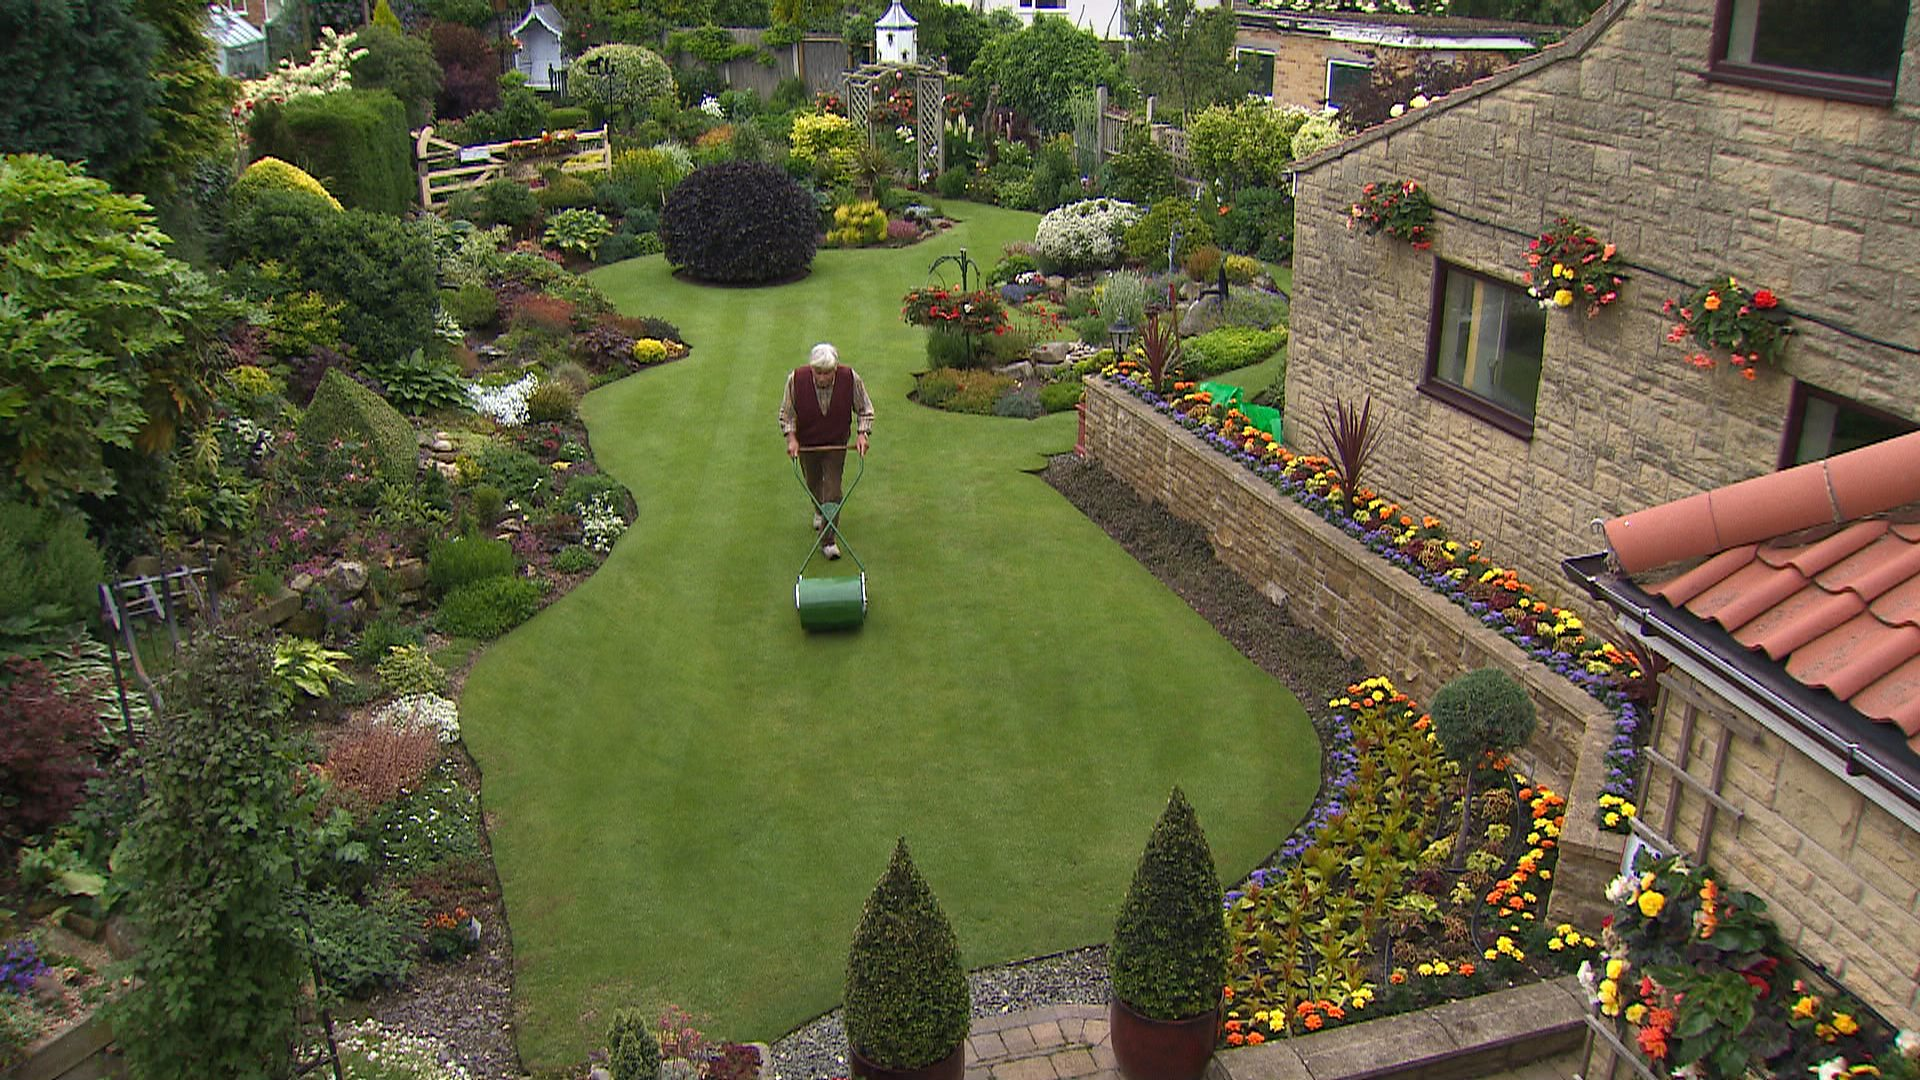 BBC Two   Gardenersu0027 World, 2015, Episode 15